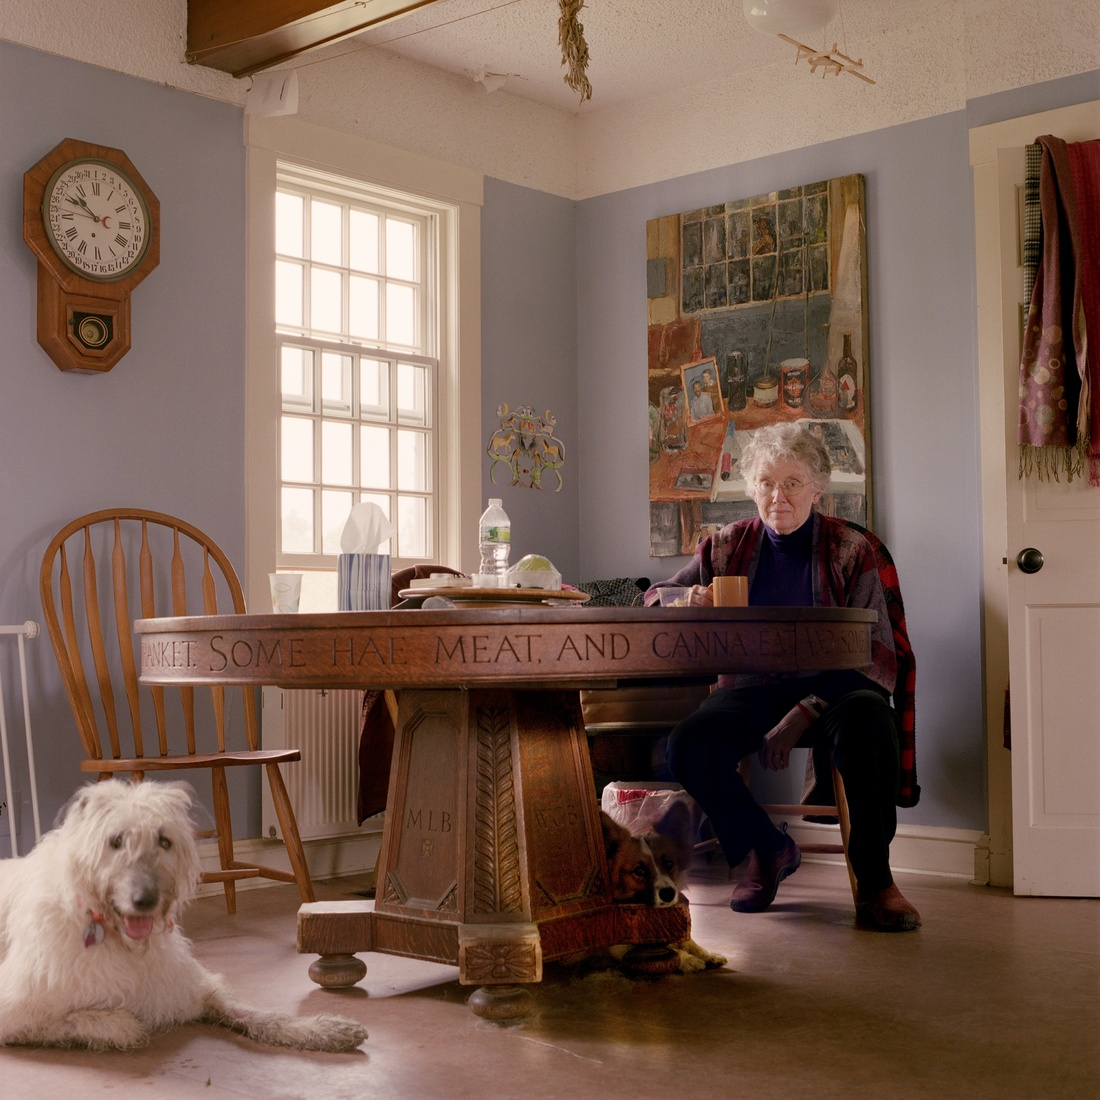 Tanja Hollander, Mary Bok, Camden, Maine, 2011. Courtesy of Tanja Hollander and MASS MoCA.